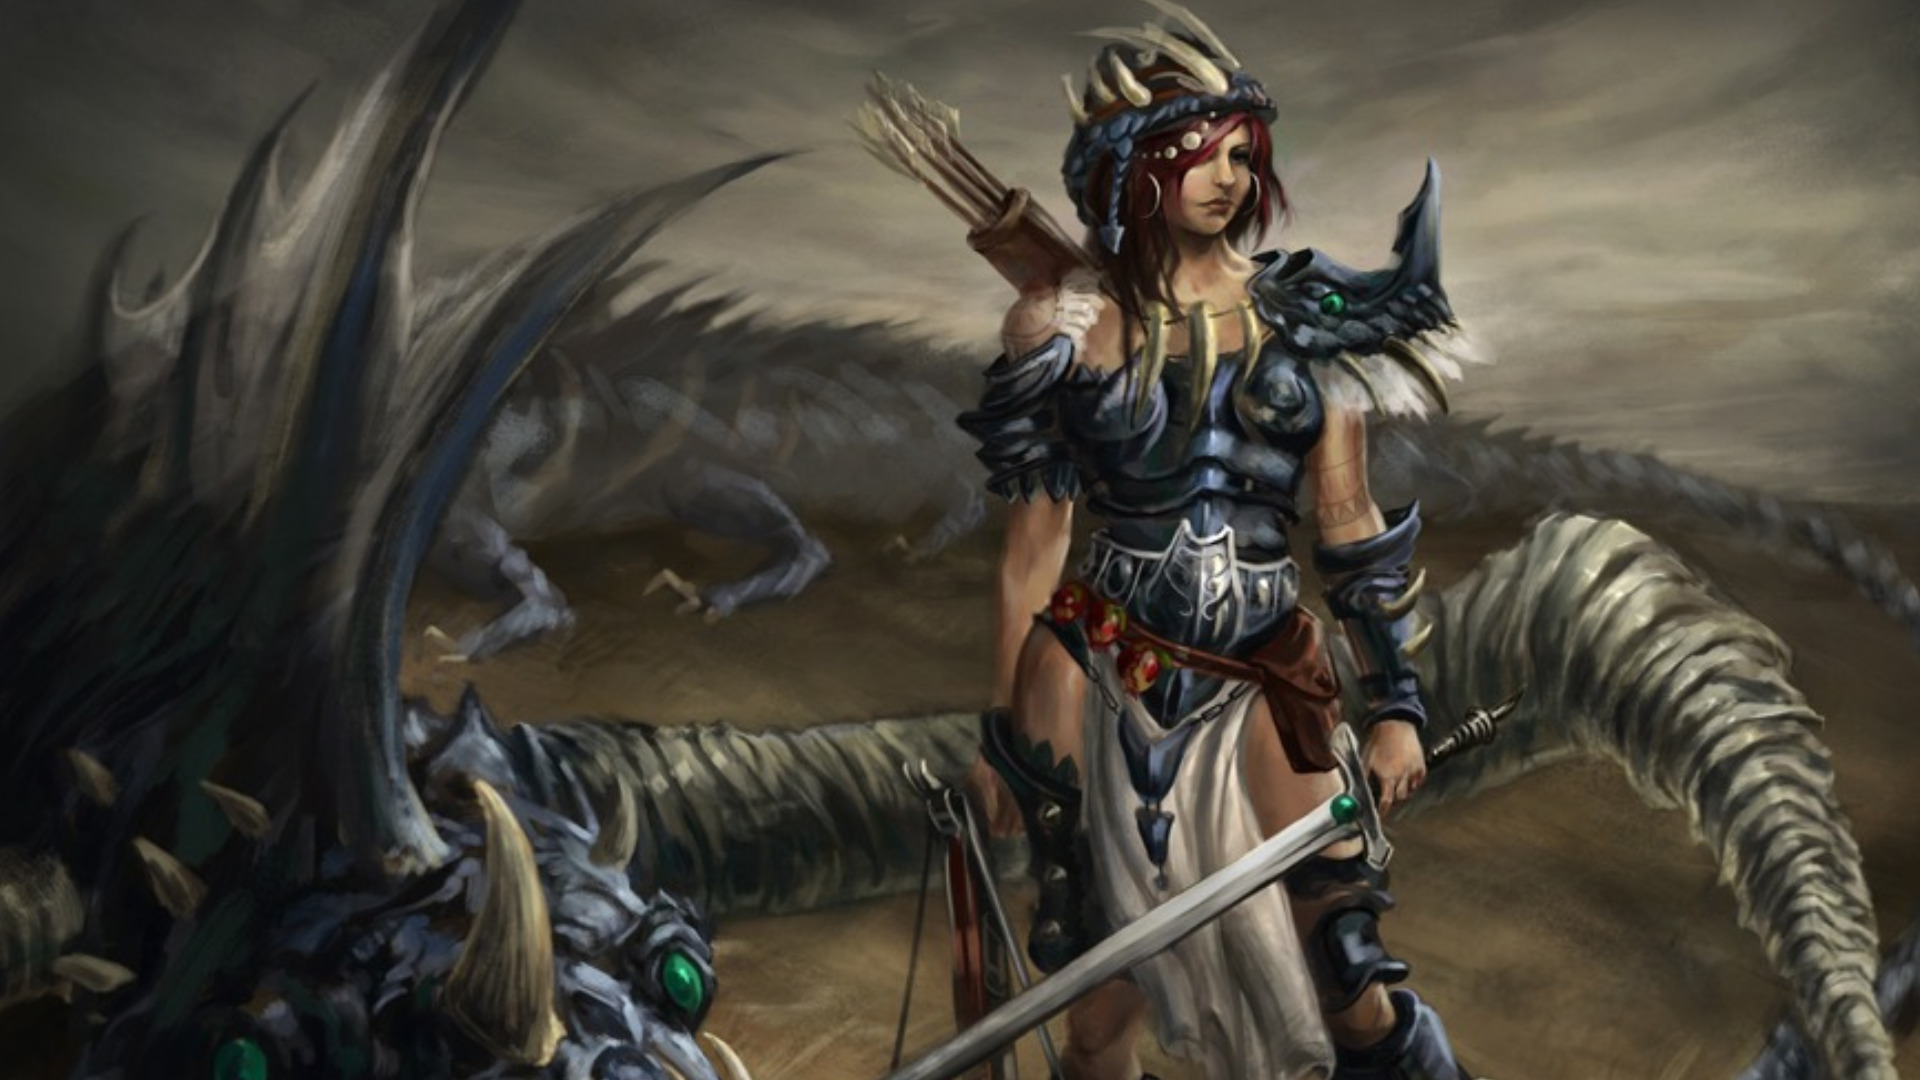 Women Warrior HD Wallpaper | Background Image | 1920x1080